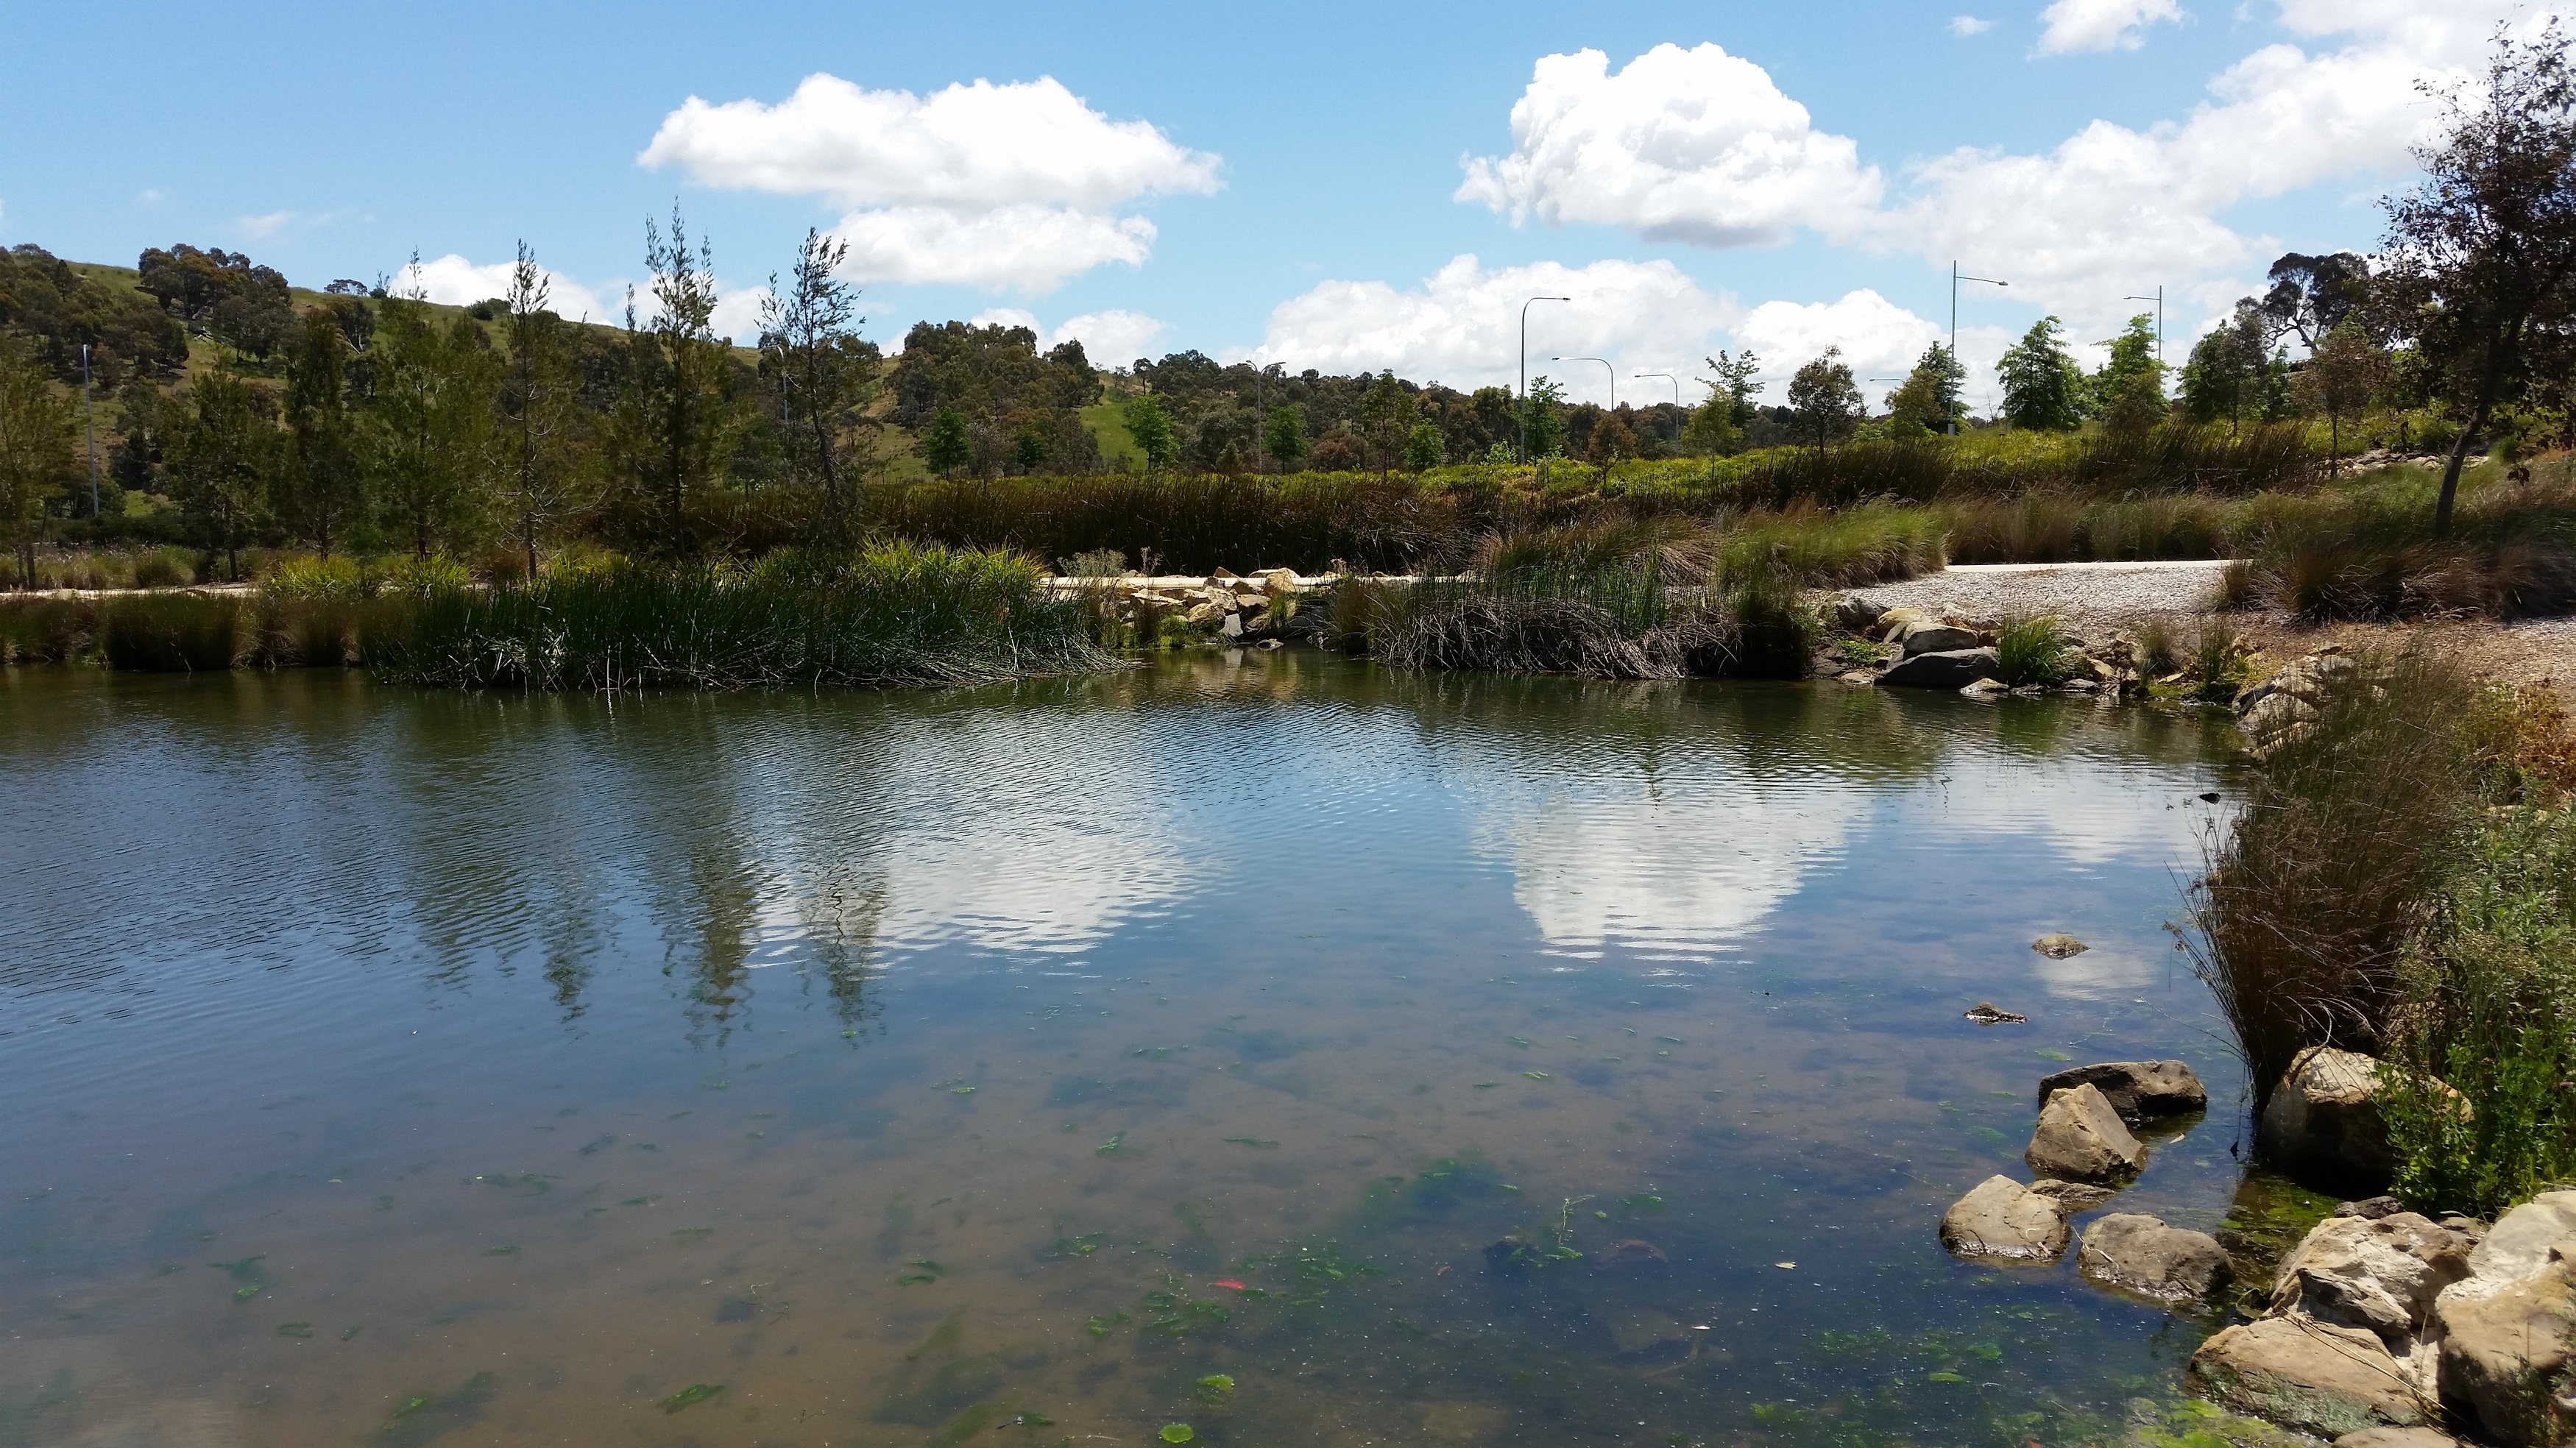 Water management is a key facet of the Ginninderra Project